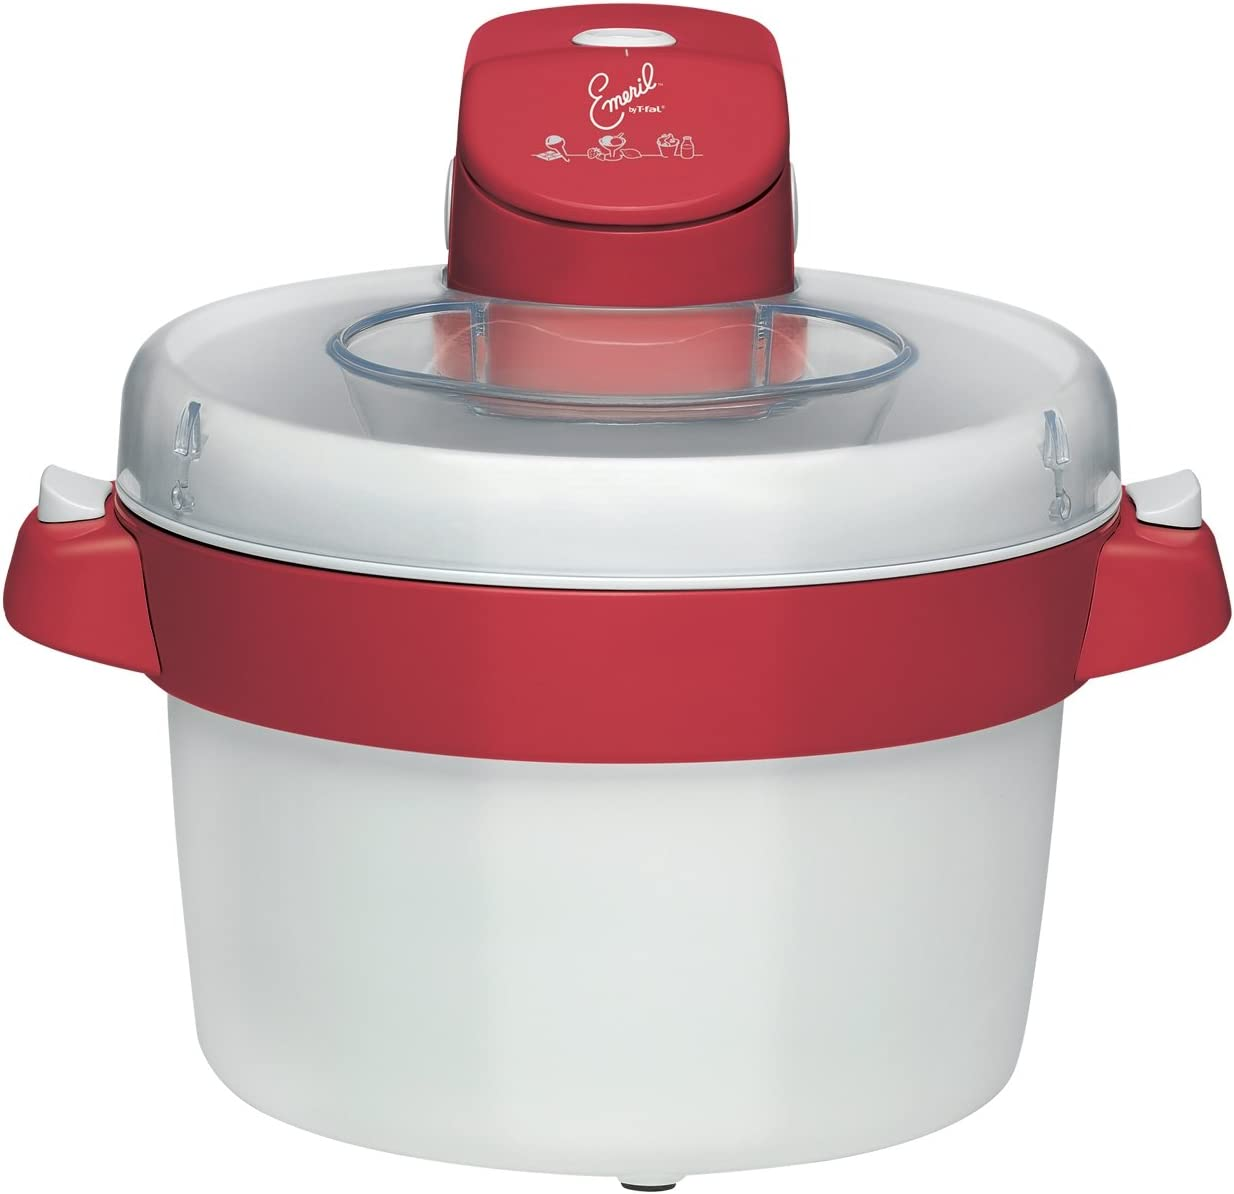 Emeril by T-fal IG5025 Ice-Cream Maker, 1.8 Quart, White